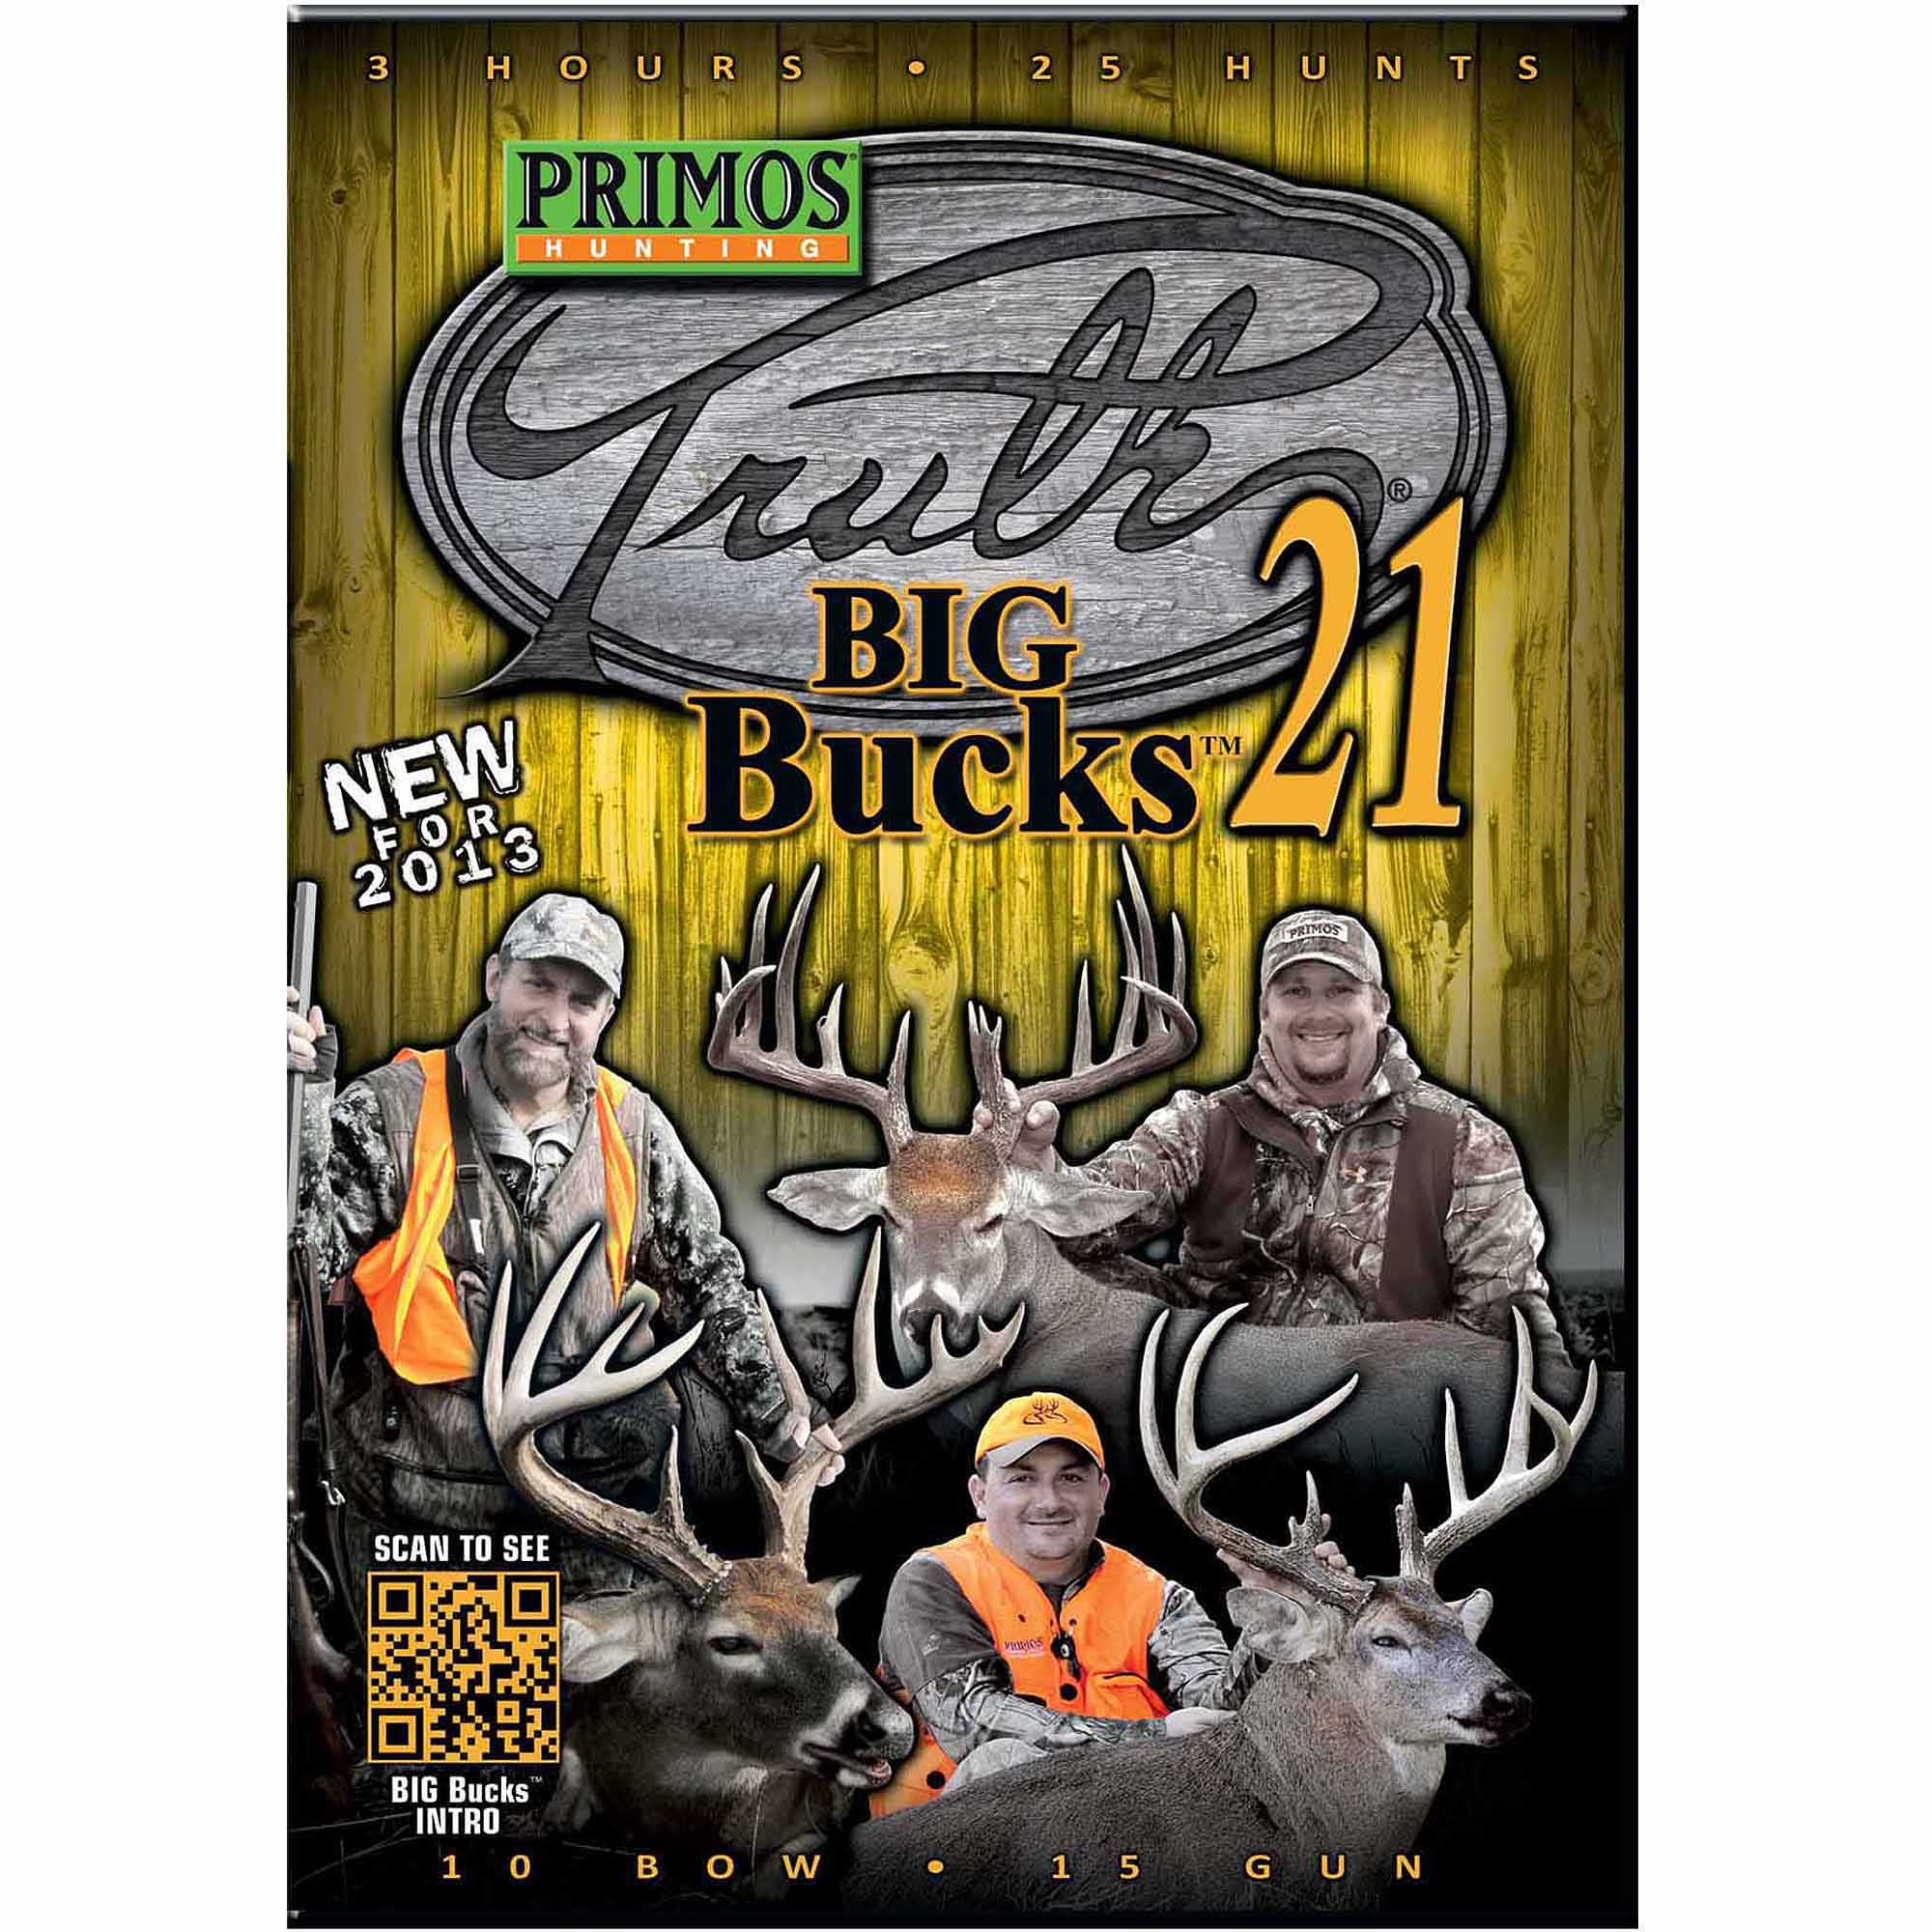 Primos Truth 21 DVD, Big Bucks